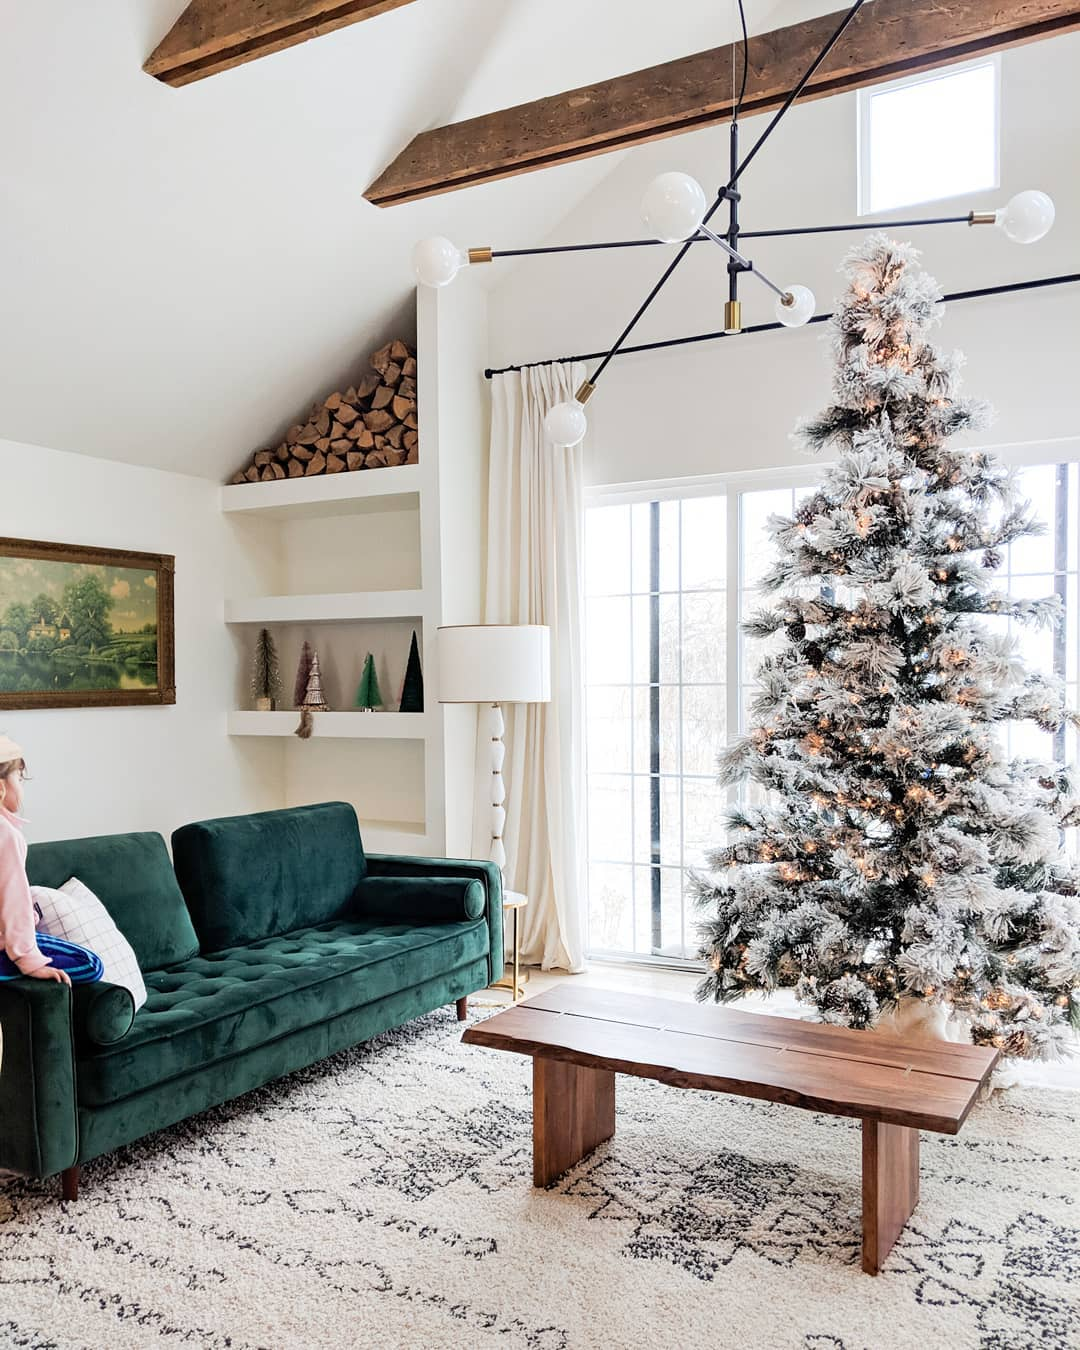 Christmas Decorating Ideas Designers Swear By_1 christmas decorating ideas Christmas Decorating Ideas Designers Swear By Christmas Decorating Ideas Designers Swear By 1